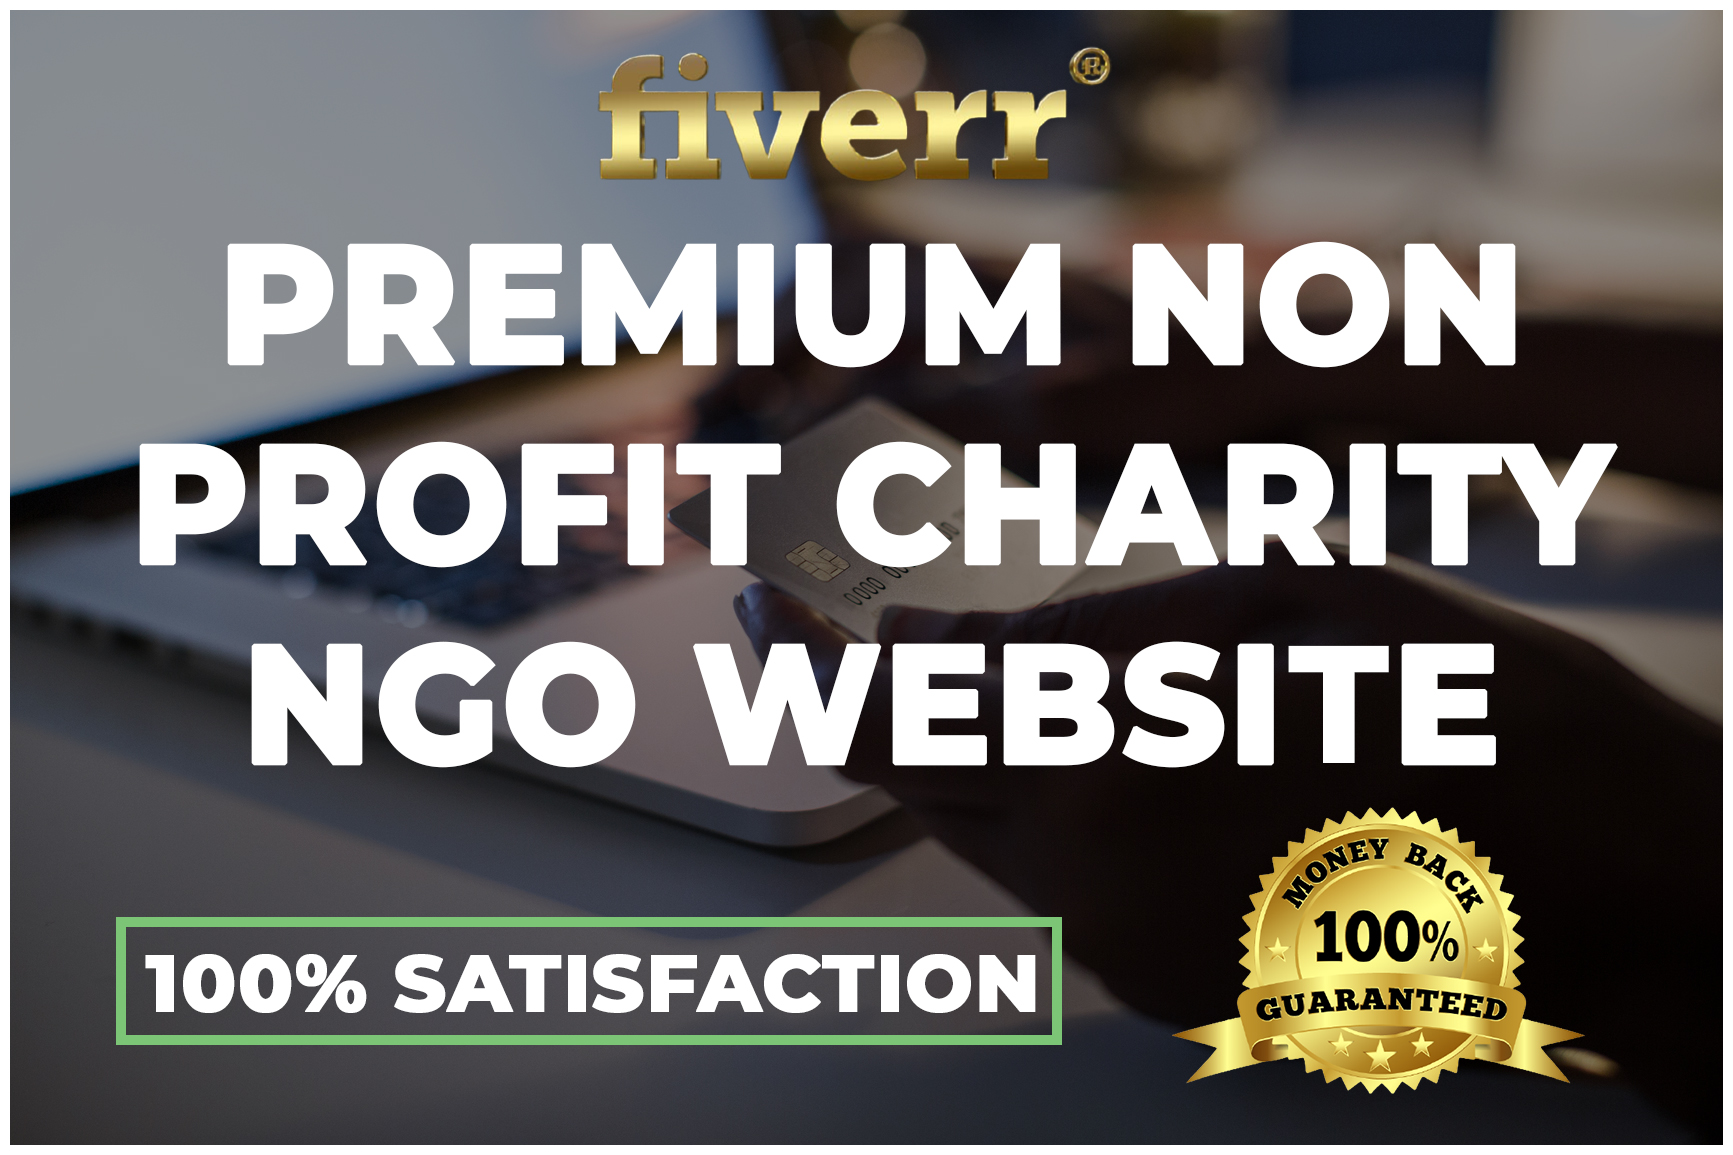 I will create nonprofit website for charity homes, ngo in 24, FiverrBox